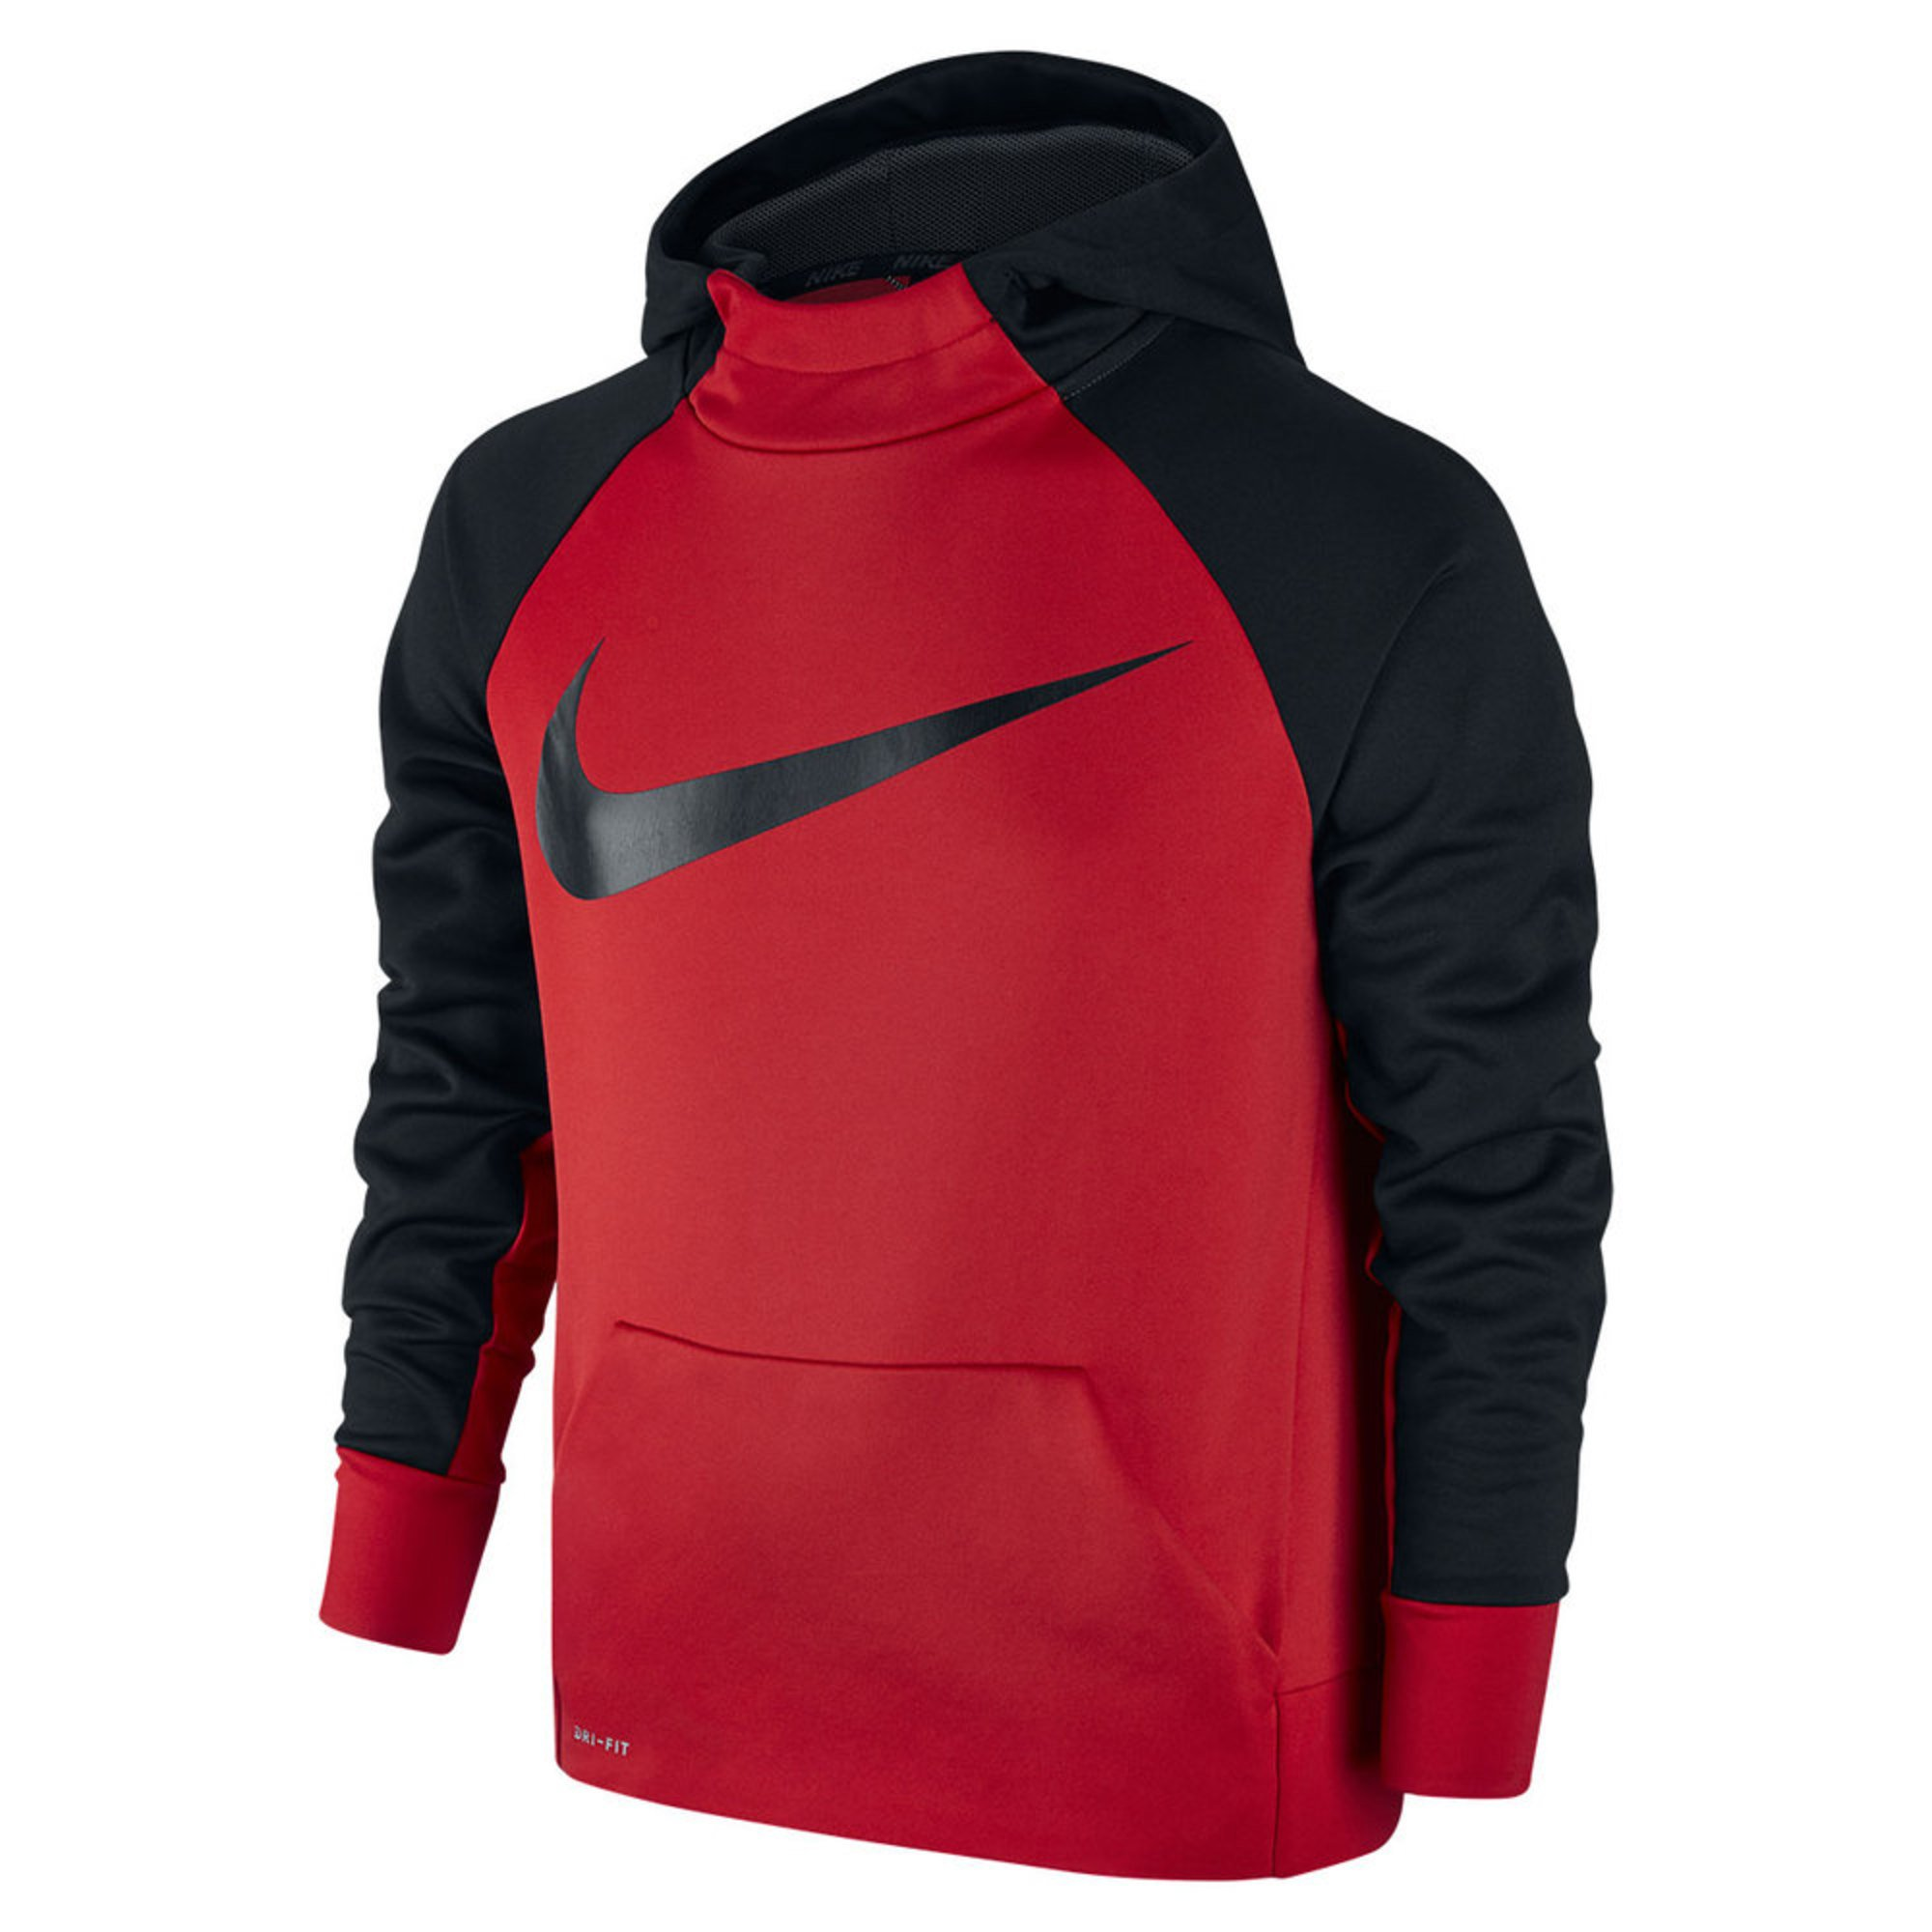 Nike Boys' Therma Pull-over Hoodie, Red | Big Boys ...